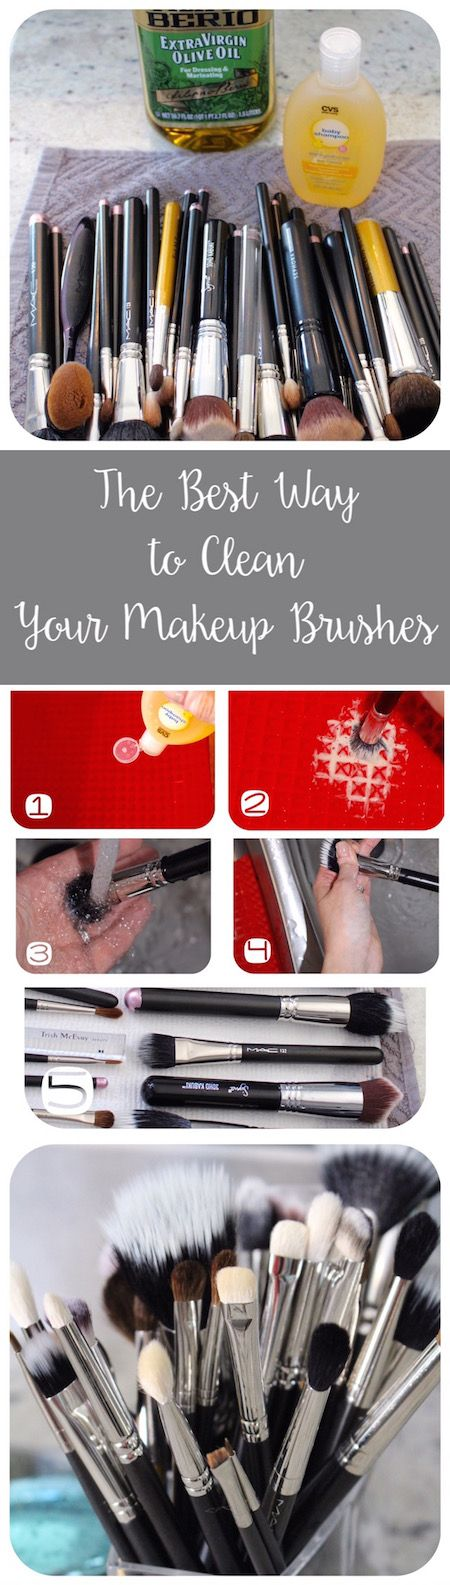 The Best Way to Clean Your Makeup Brushes